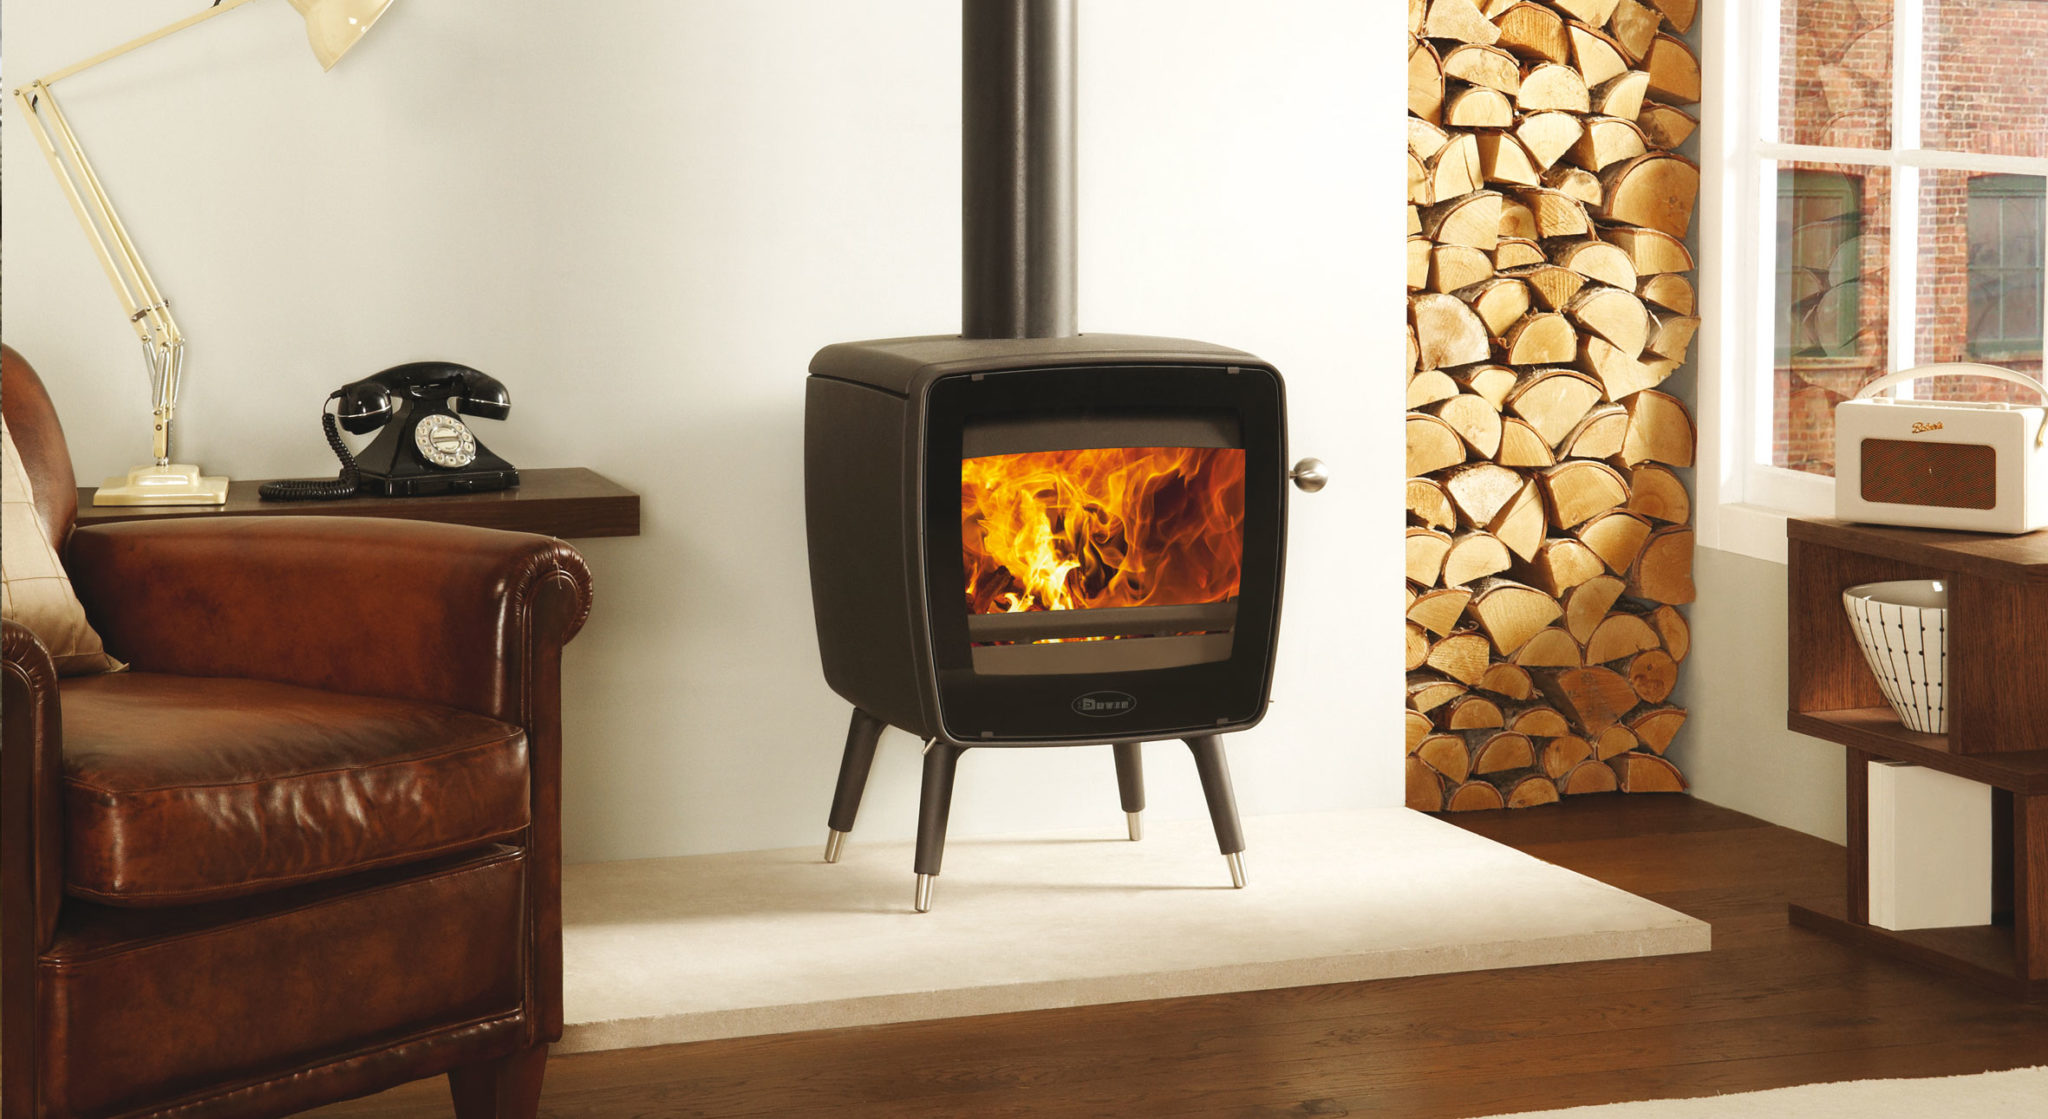 Choosing the right stove or fire